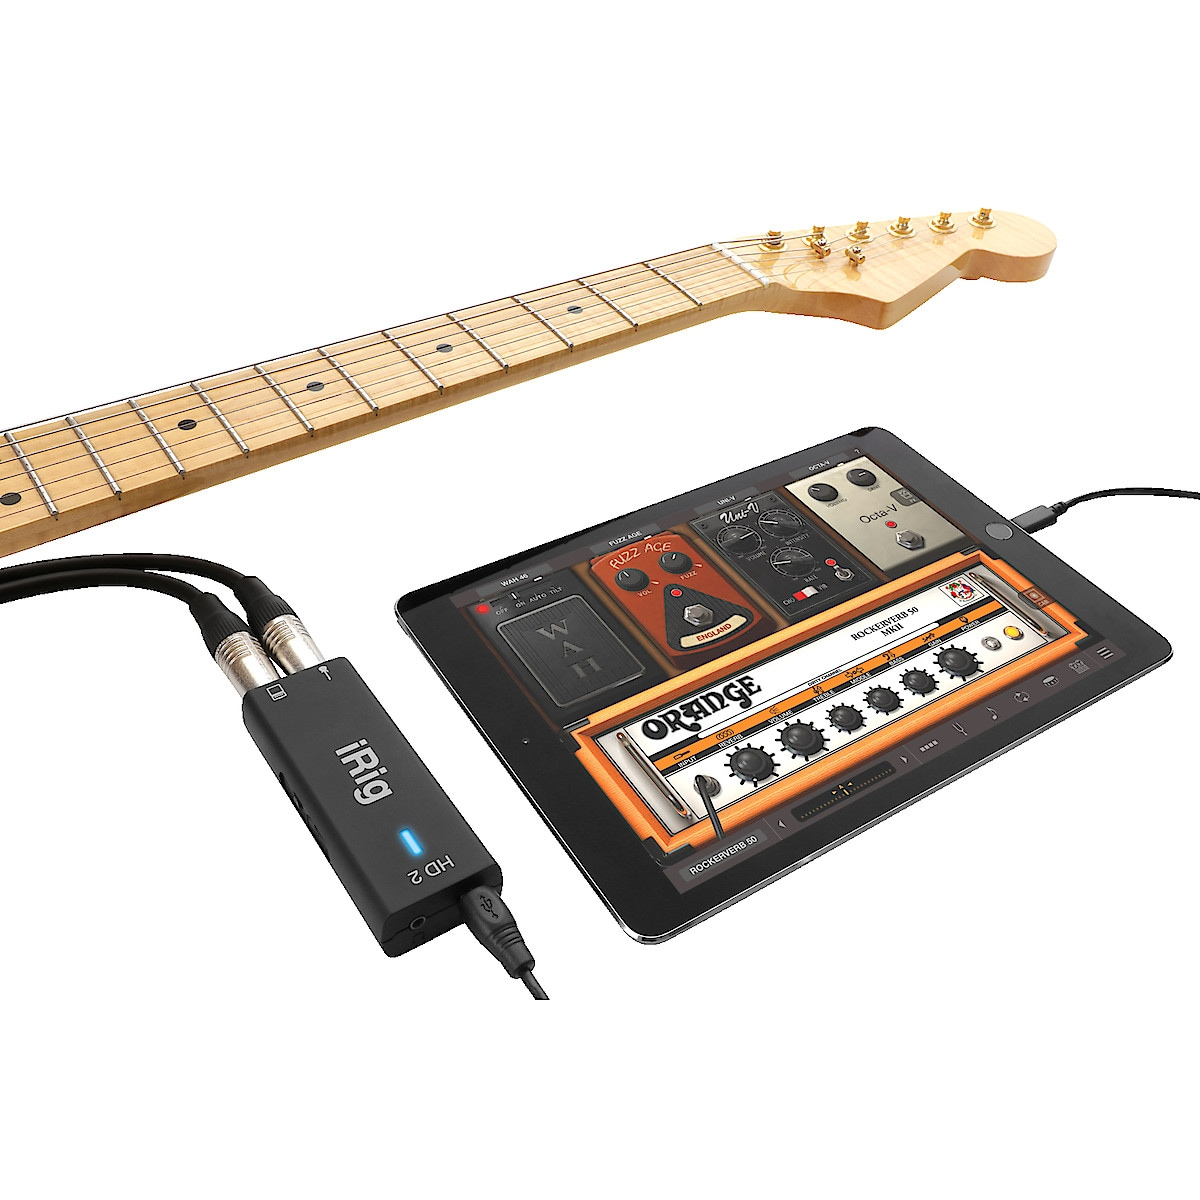 Gitarrinterface IK Multimedia iRig HD 2